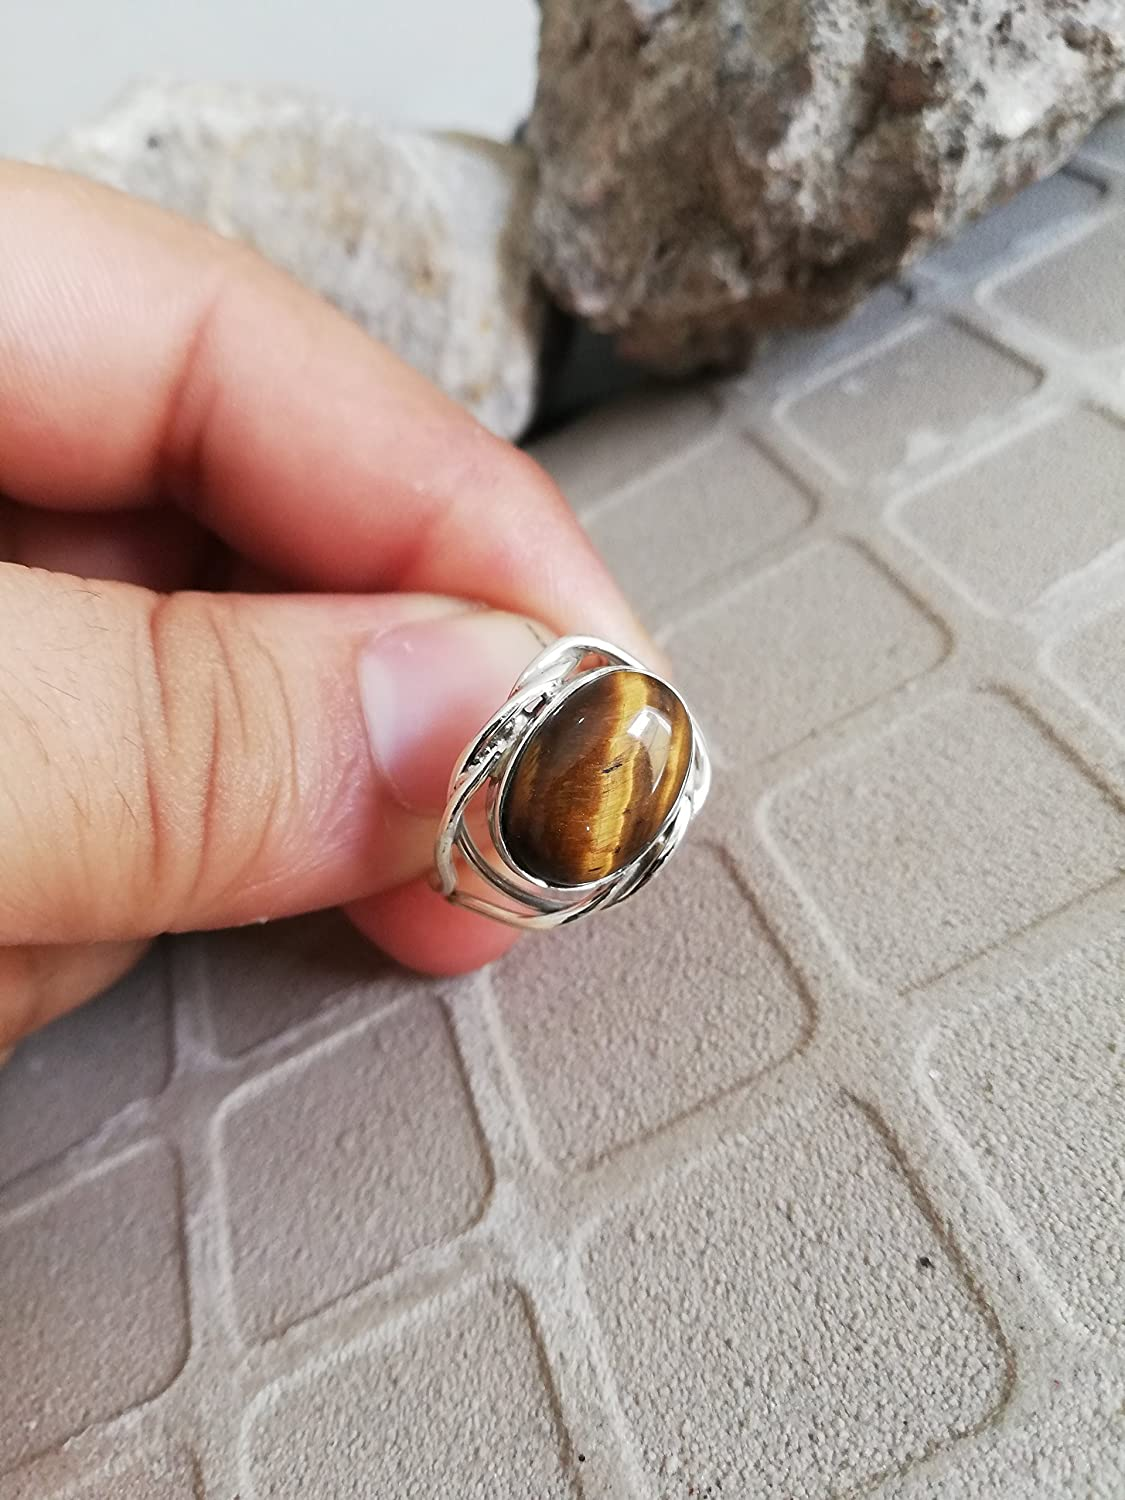 Tiger Eye Ring, 925 Sterling Silver Ring, Protraction Ring, Cabochon Ring, Designer Ring, Cocktail Ring, Anniversary Gift, Vintage Ring, Yoga Jewelry, Good looking Ring, US All Size Ring.